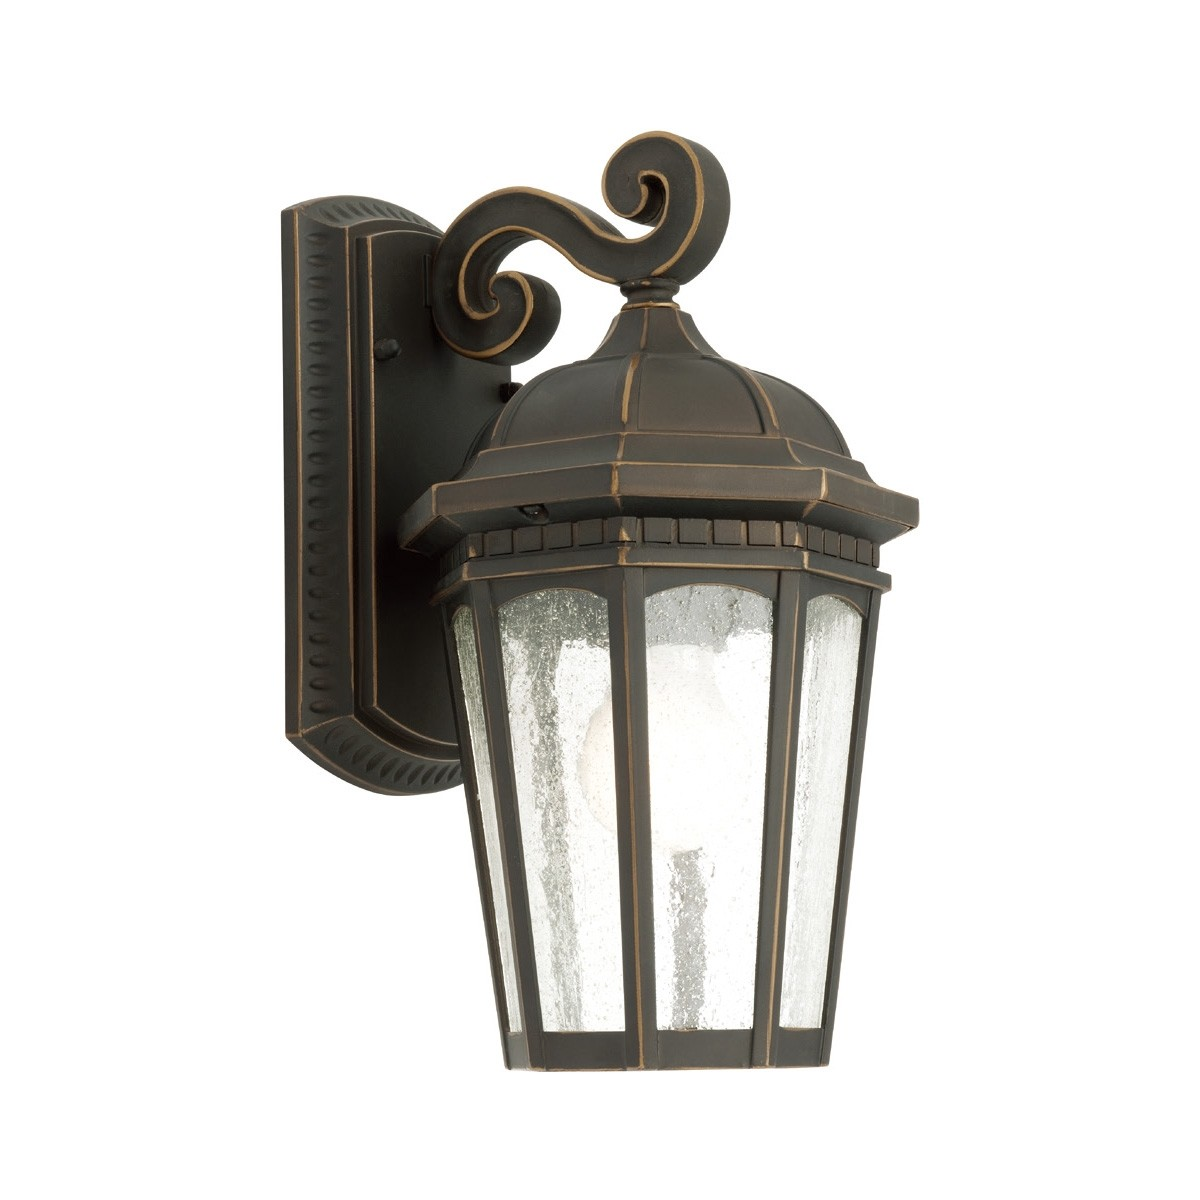 Cambirdge IP43 Outdoor Wall Light - Bronze